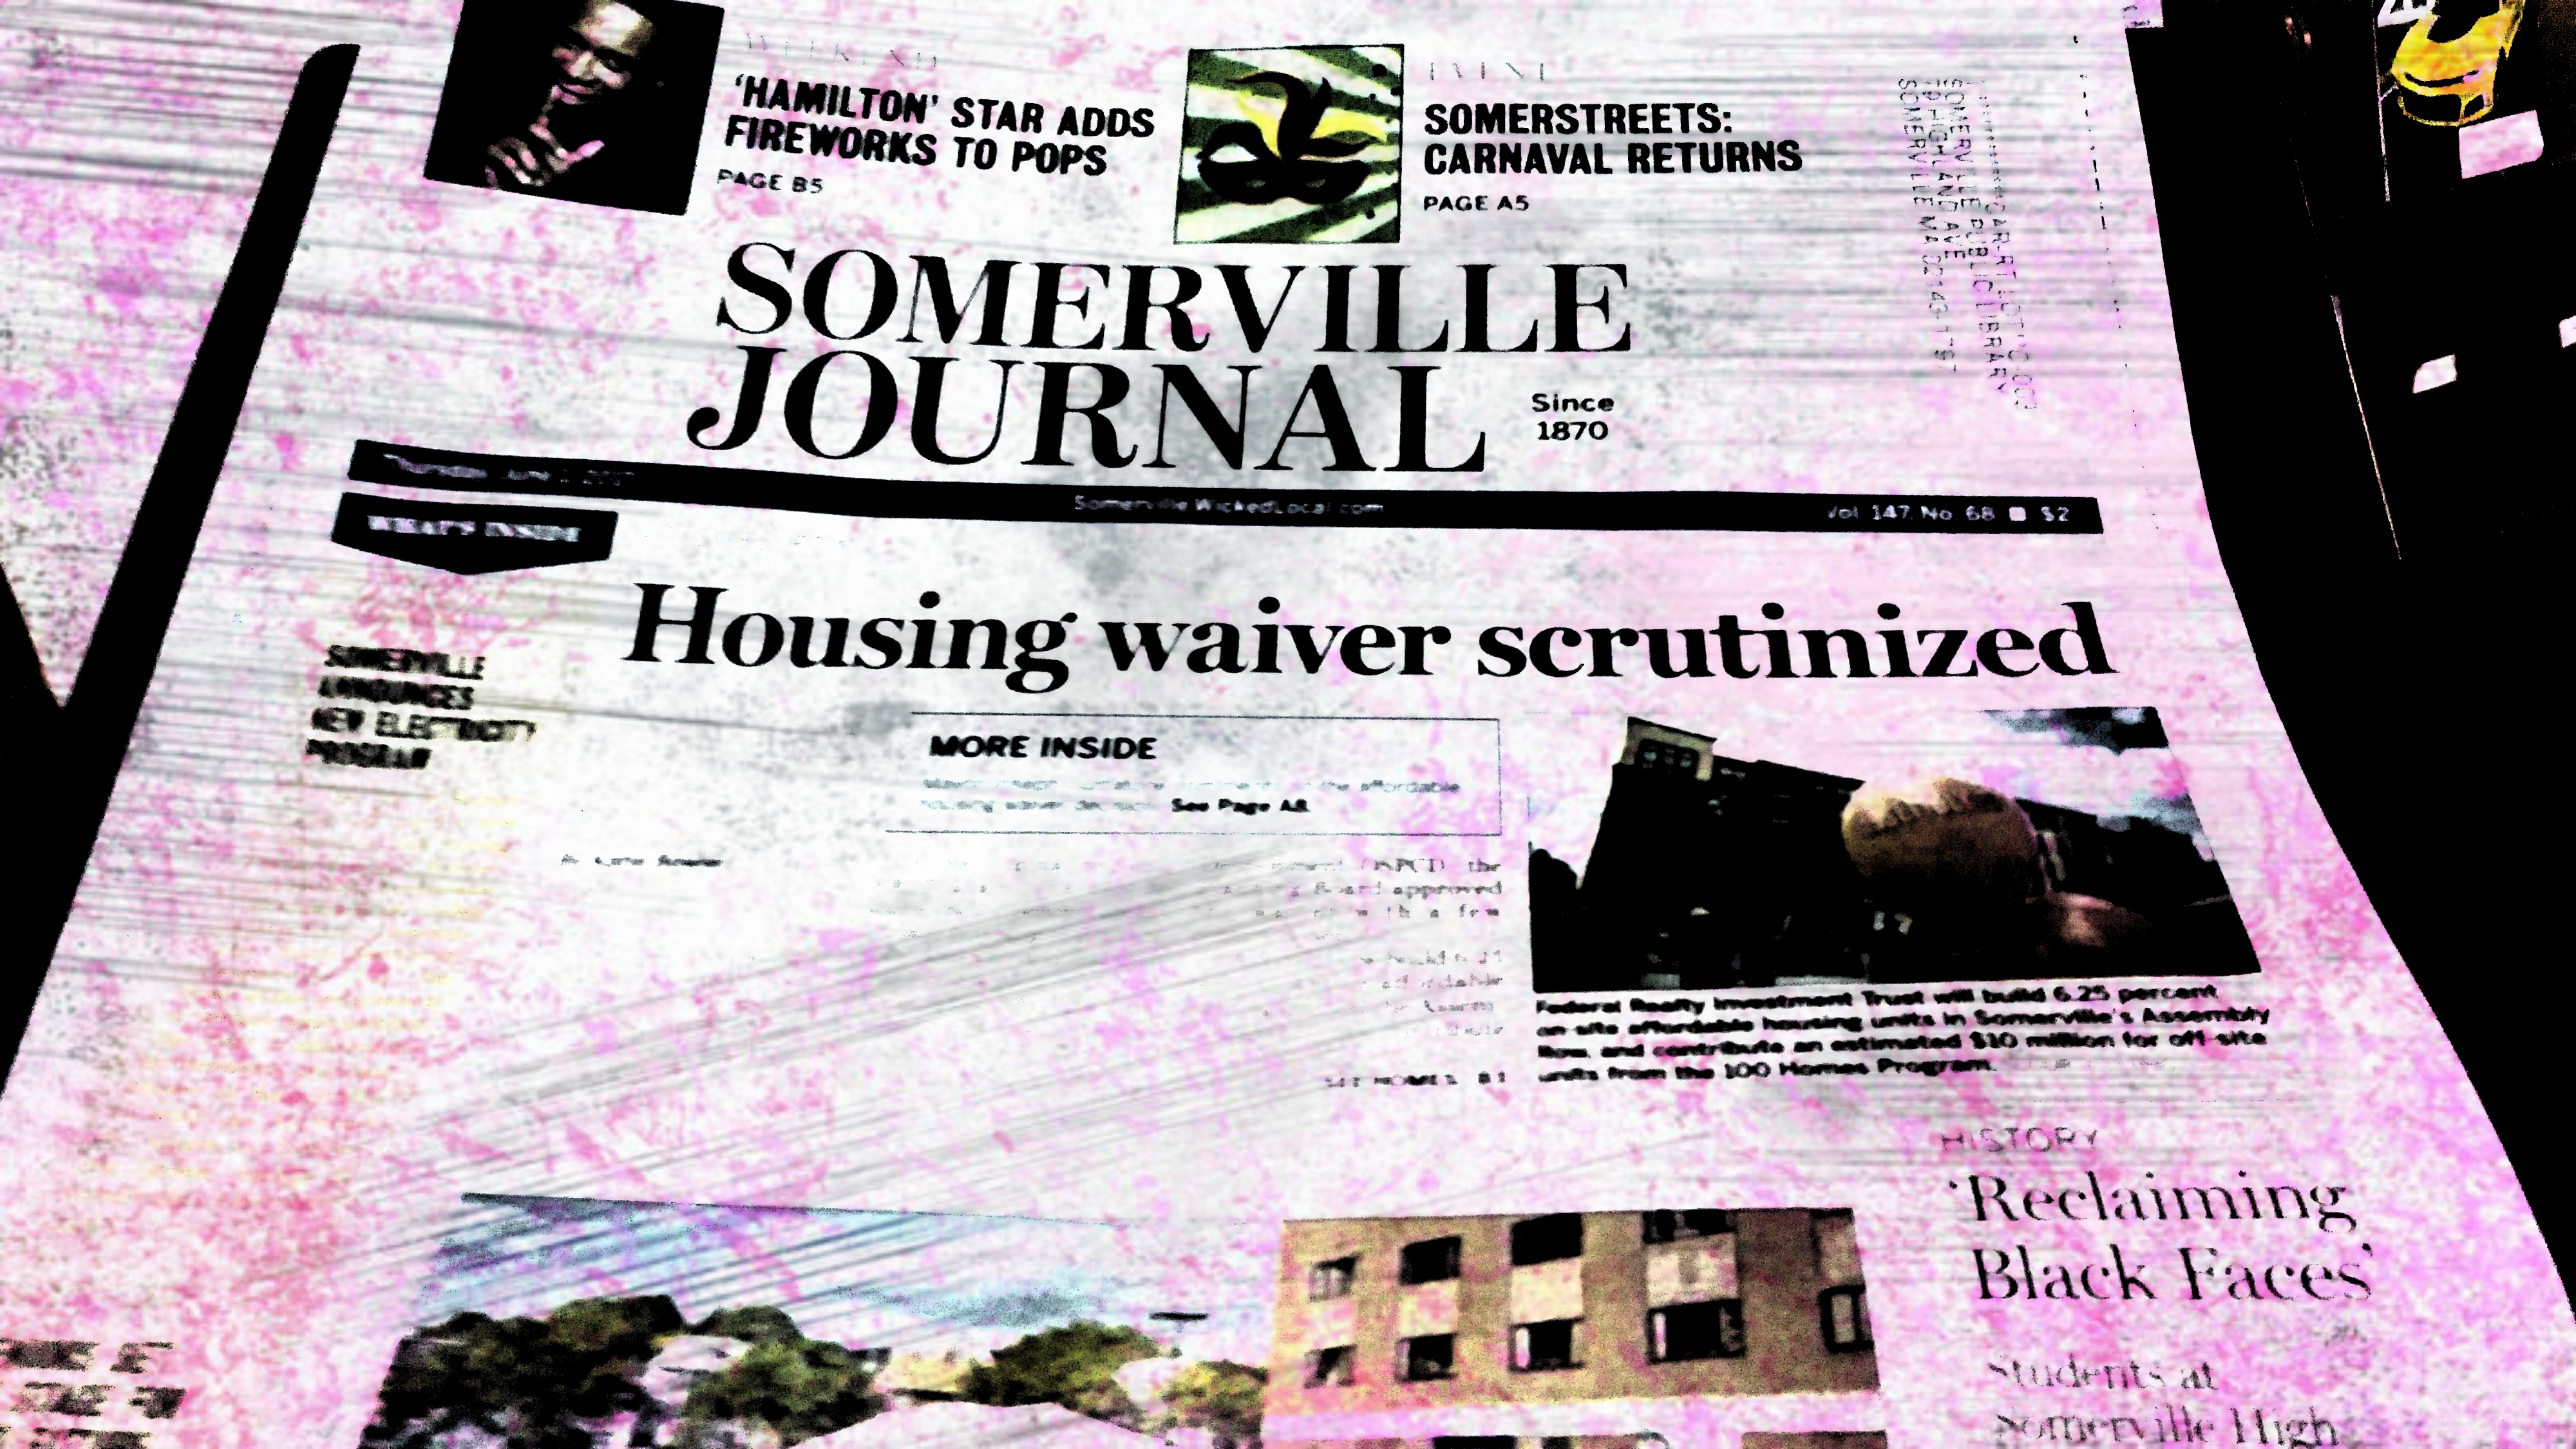 Picture of the Somerville Journal